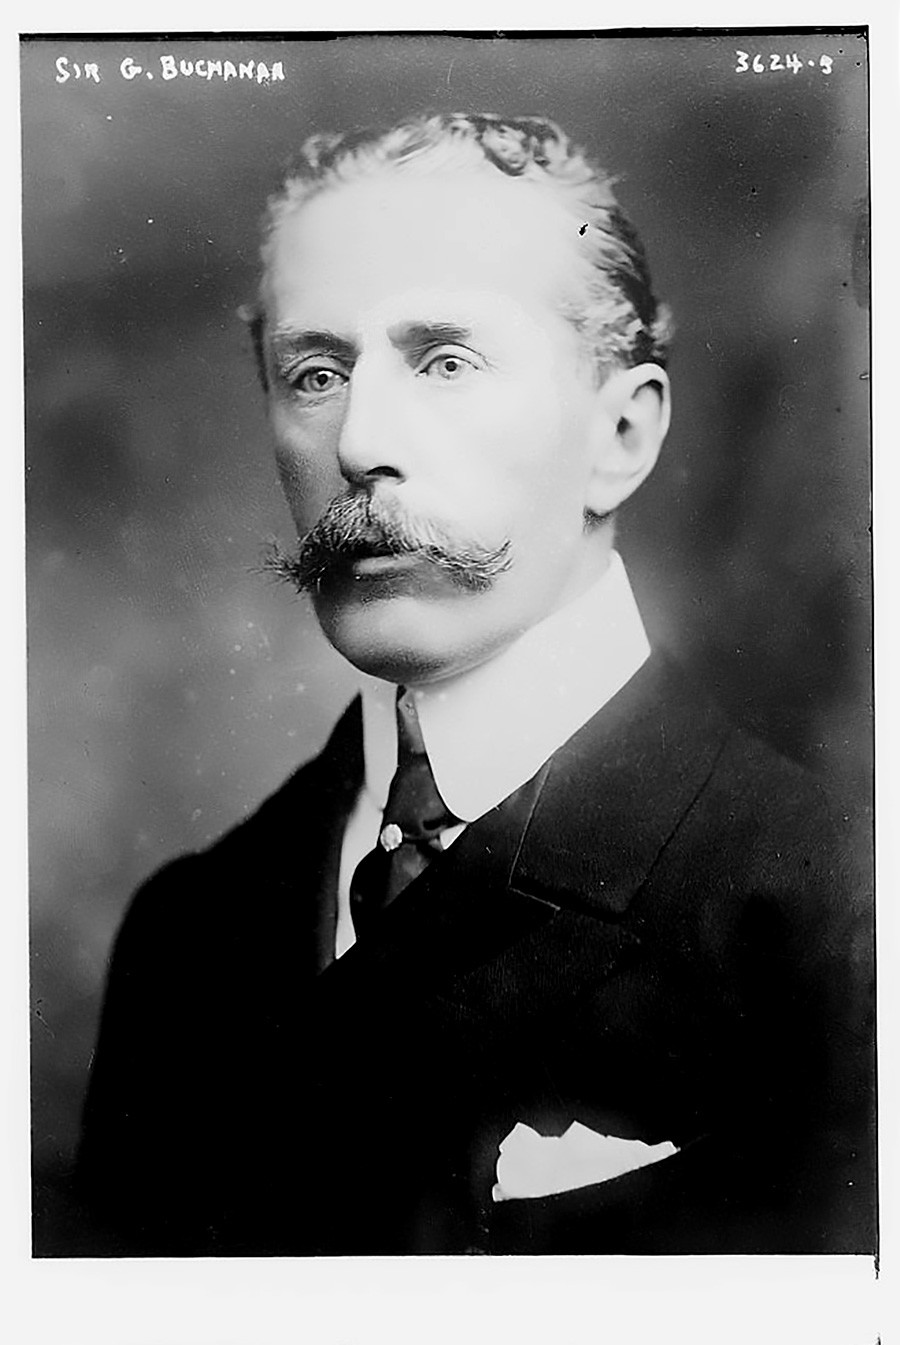 Sir George William Buchanan im Jahr 1915